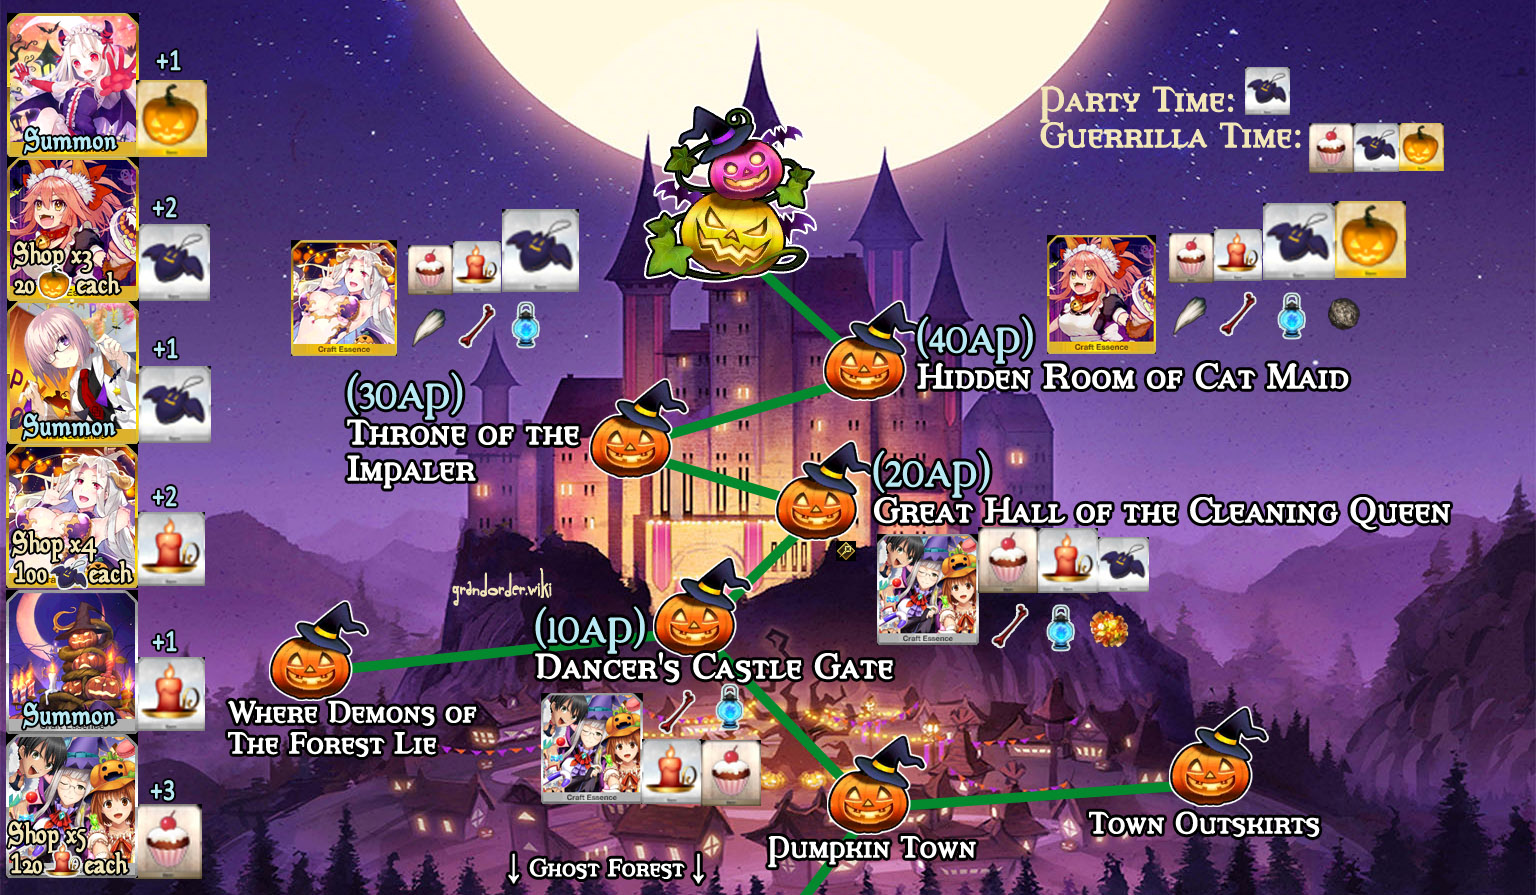 Fgo Wiki Halloween 2020 Rerun Adventure of Singing Pumpkin Castle (Rerun)   Fate/Grand Order Wiki